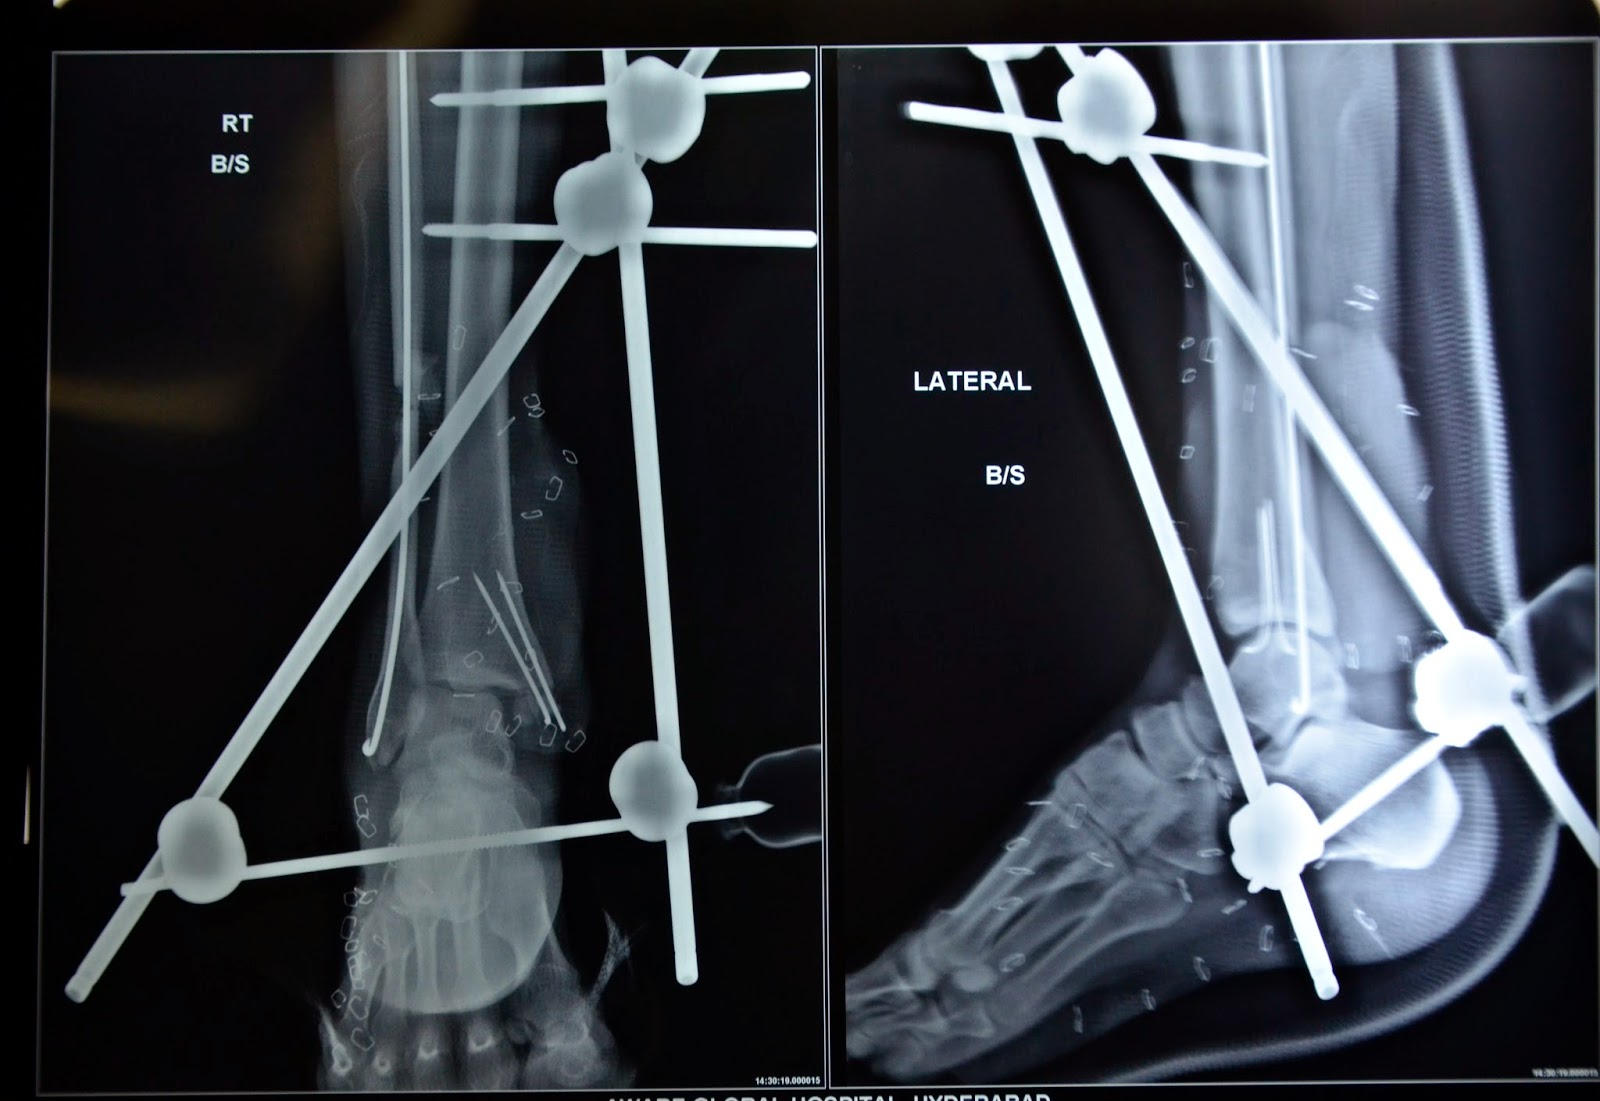 OPEN ANKLE JOINT FRACTURE DISLOCATION - DEBRIDEMENT - FREE GRACILIS -2.bp.blogspot.com